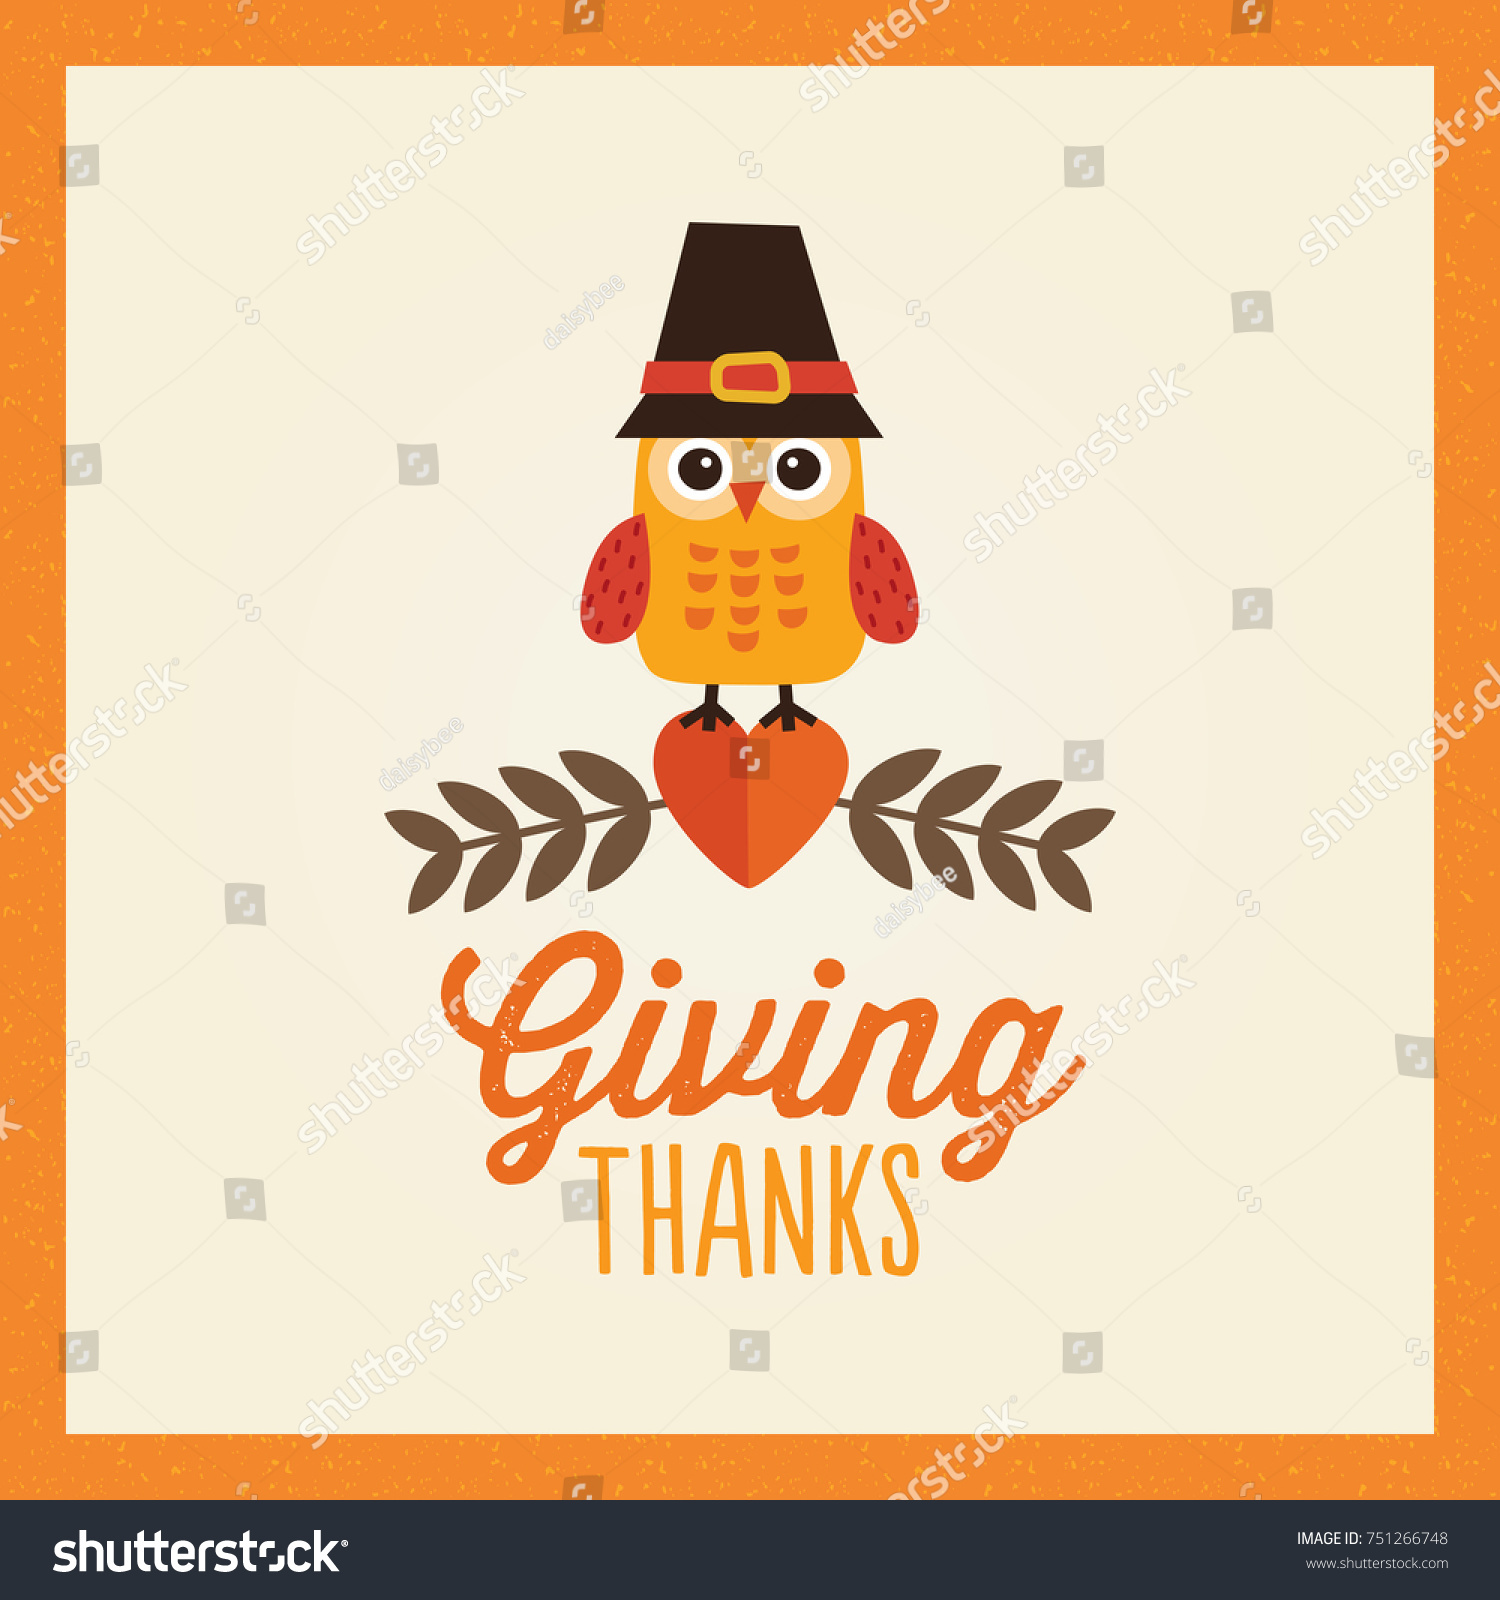 Retro Thanksgiving Day Card Design With Cute Little Owl In Pilgrim